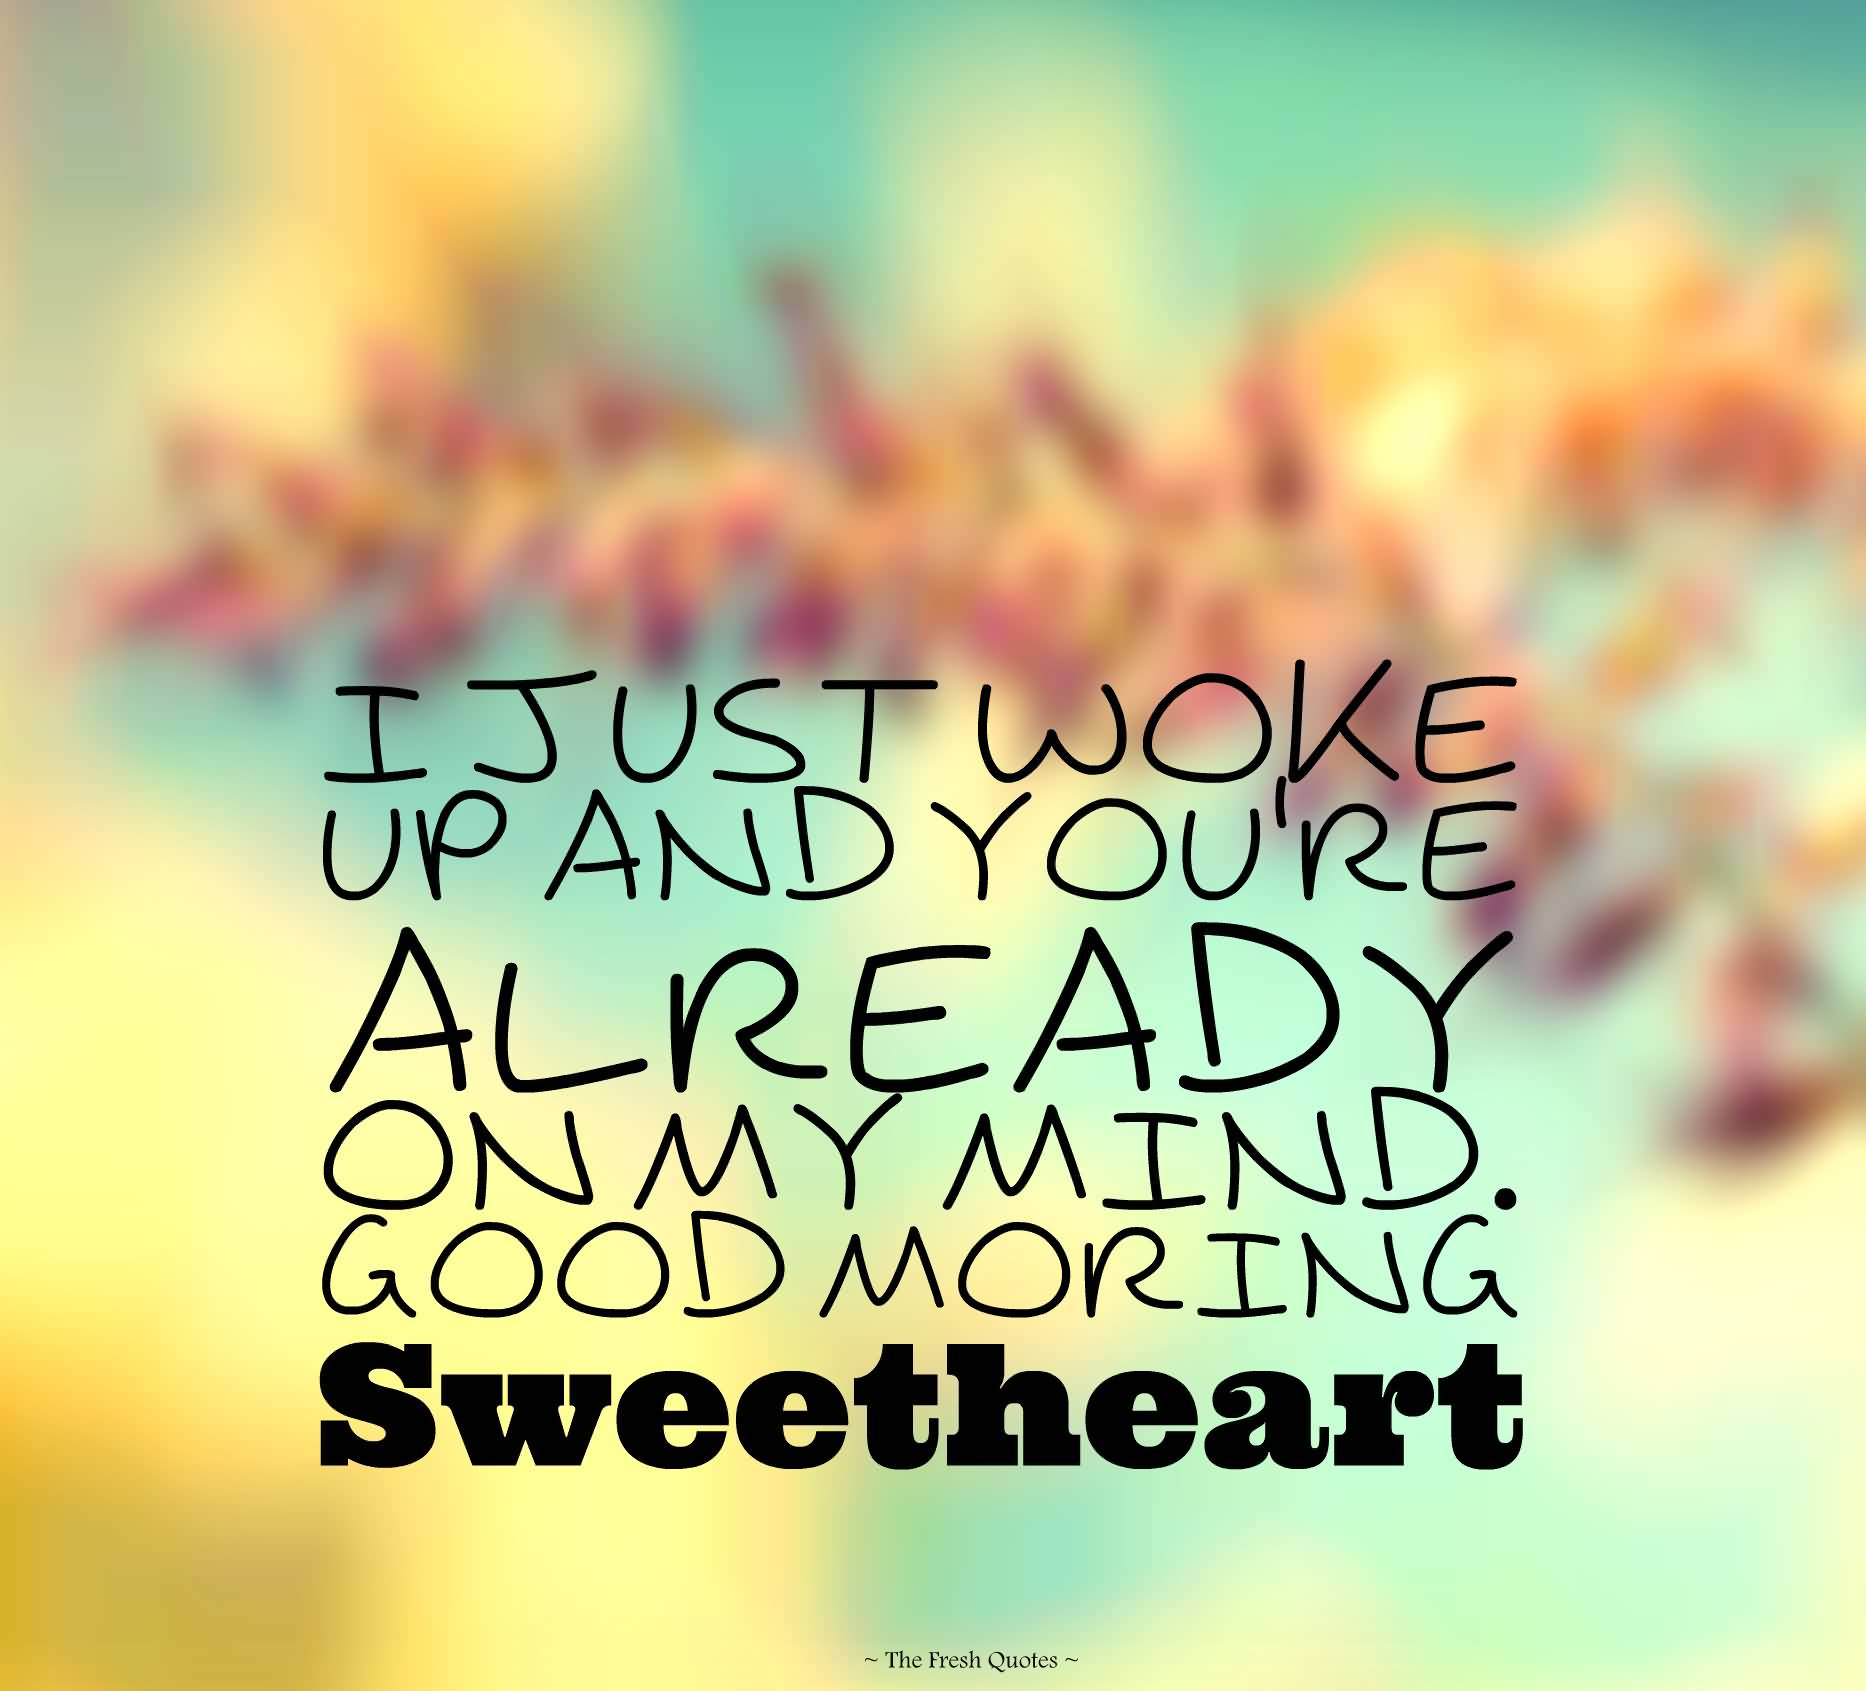 Good Morning Love Quotes 11